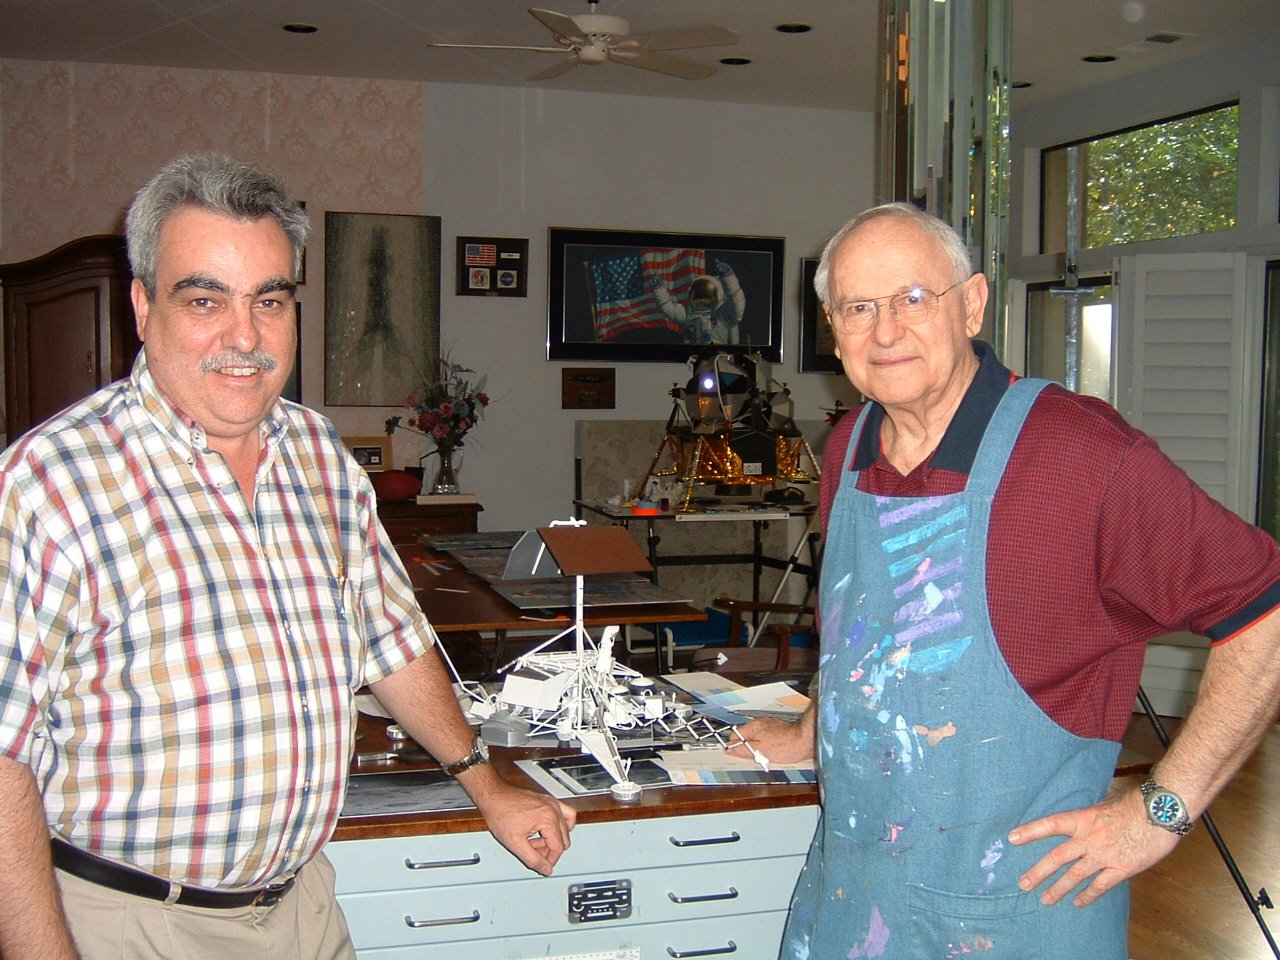 Nick Proach and Alan Bean